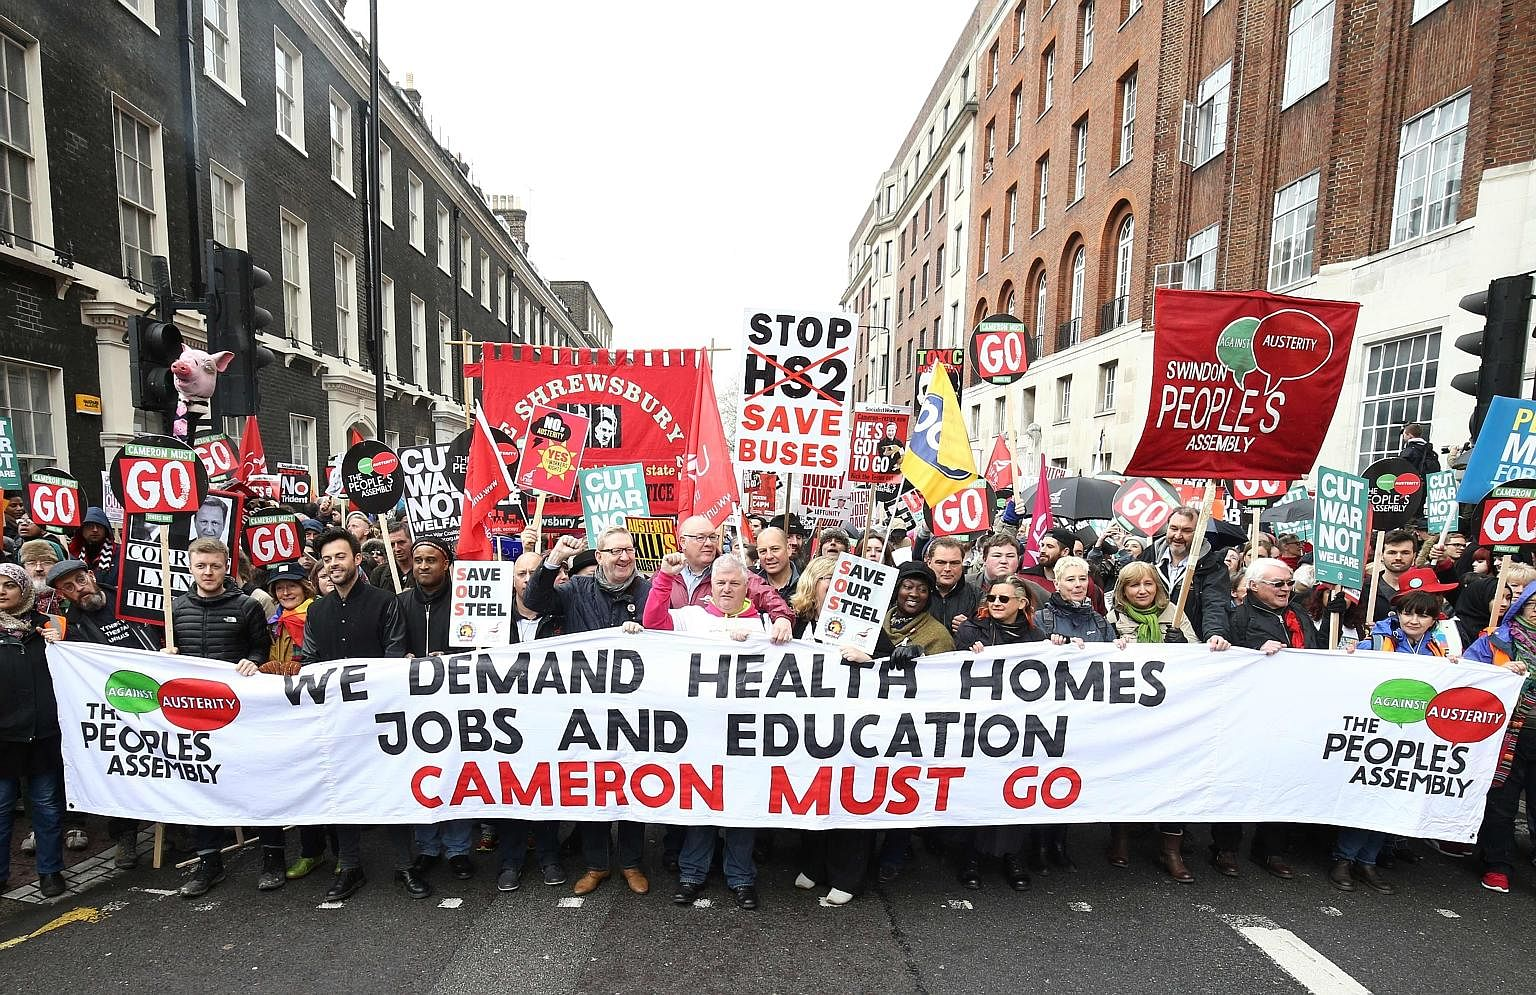 Protesters in Britain rallying over a variety of domestic issues, including a call for Prime Minister David Cameron to step down, during a march organised by the People's Assembly Against Austerity last Saturday.